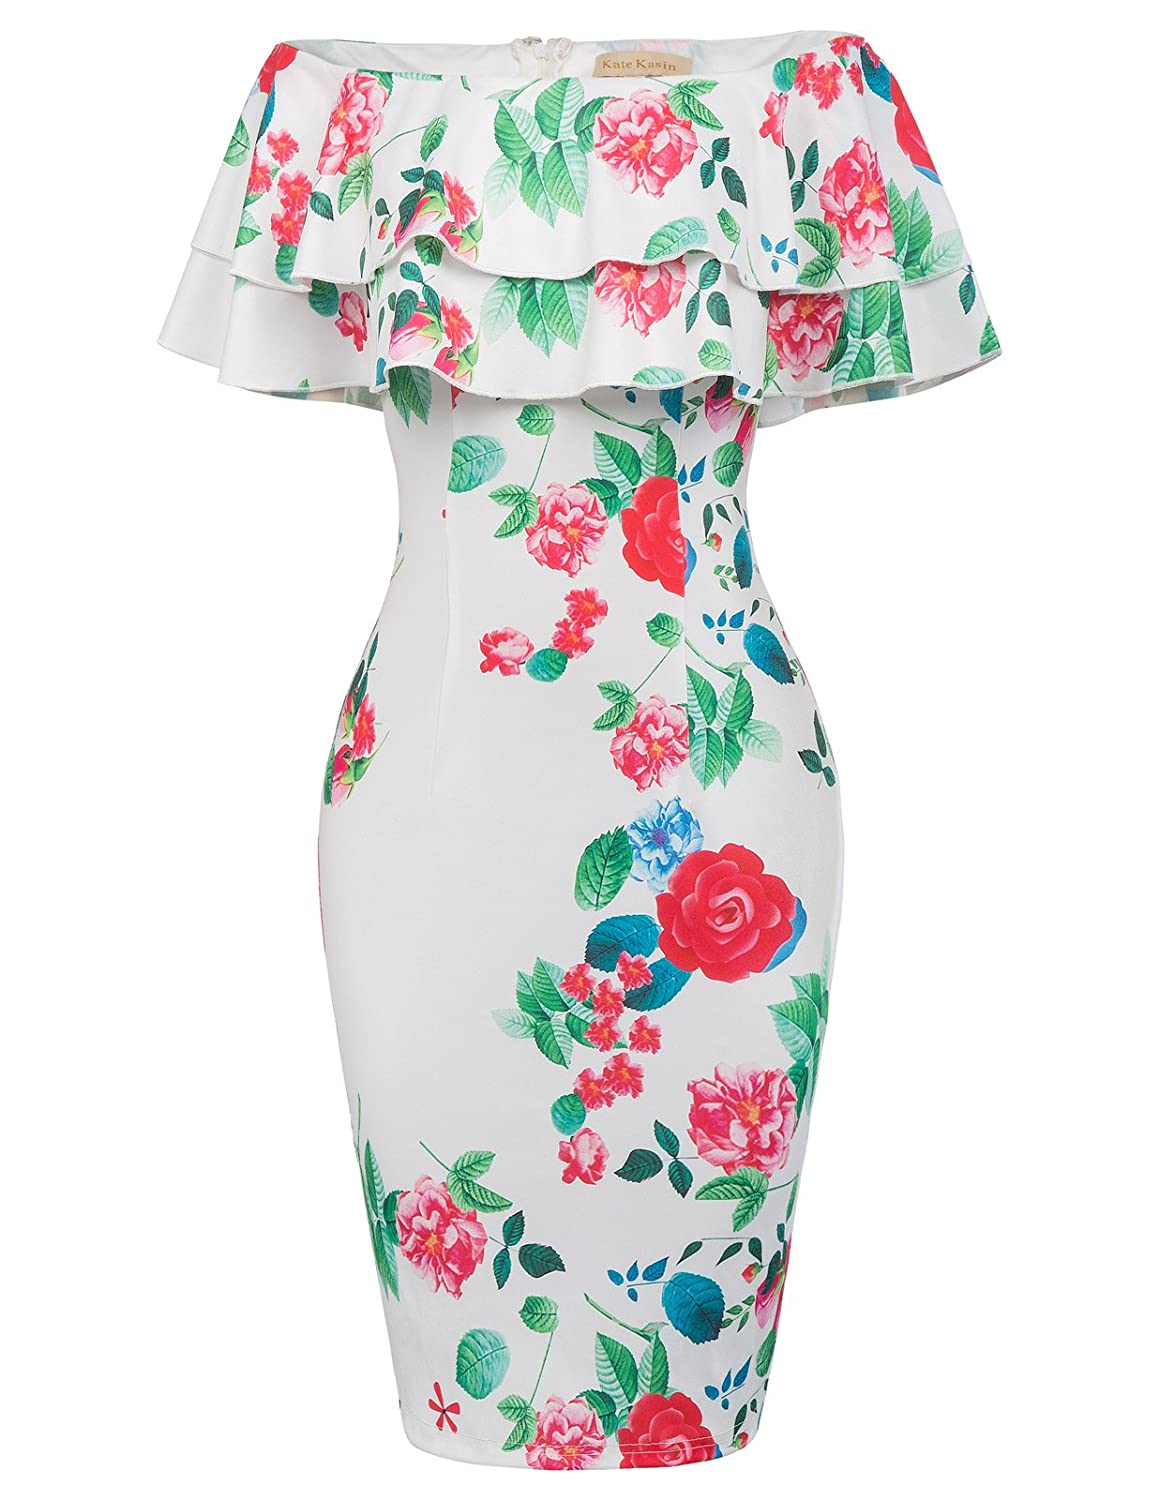 c11312a8 About the Dress STYLE NAME: Pencil; WiggleSleeve: Off Shoulder Layered  RufflesCLOSURE TYPE: Concealed zipper in the back WAIST STYLE: High Waist  PATTERN ...